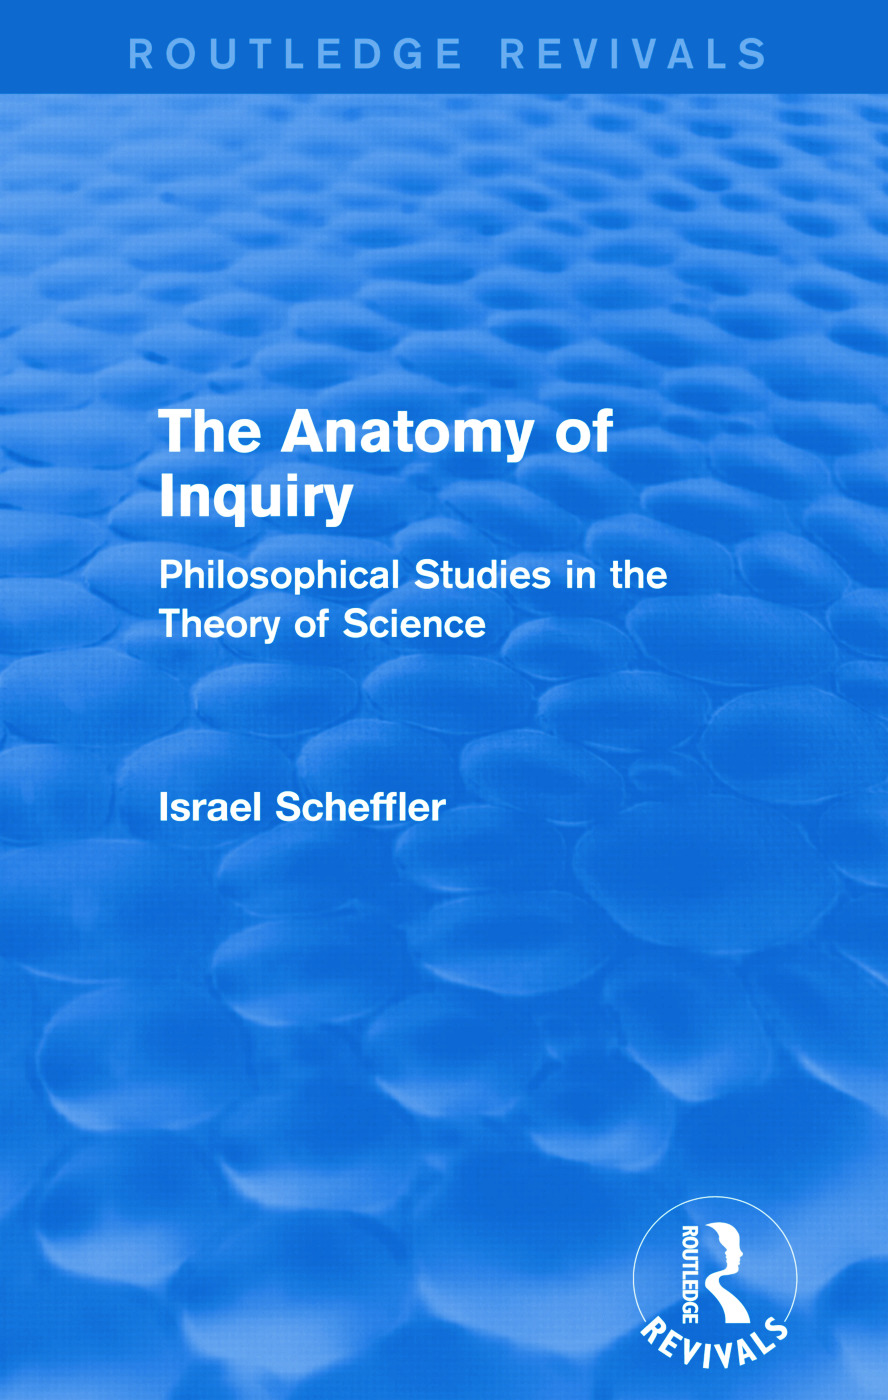 The Anatomy of Inquiry (Routledge Revivals): Philosophical Studies in the Theory of Science, 1st Edition (Paperback) book cover